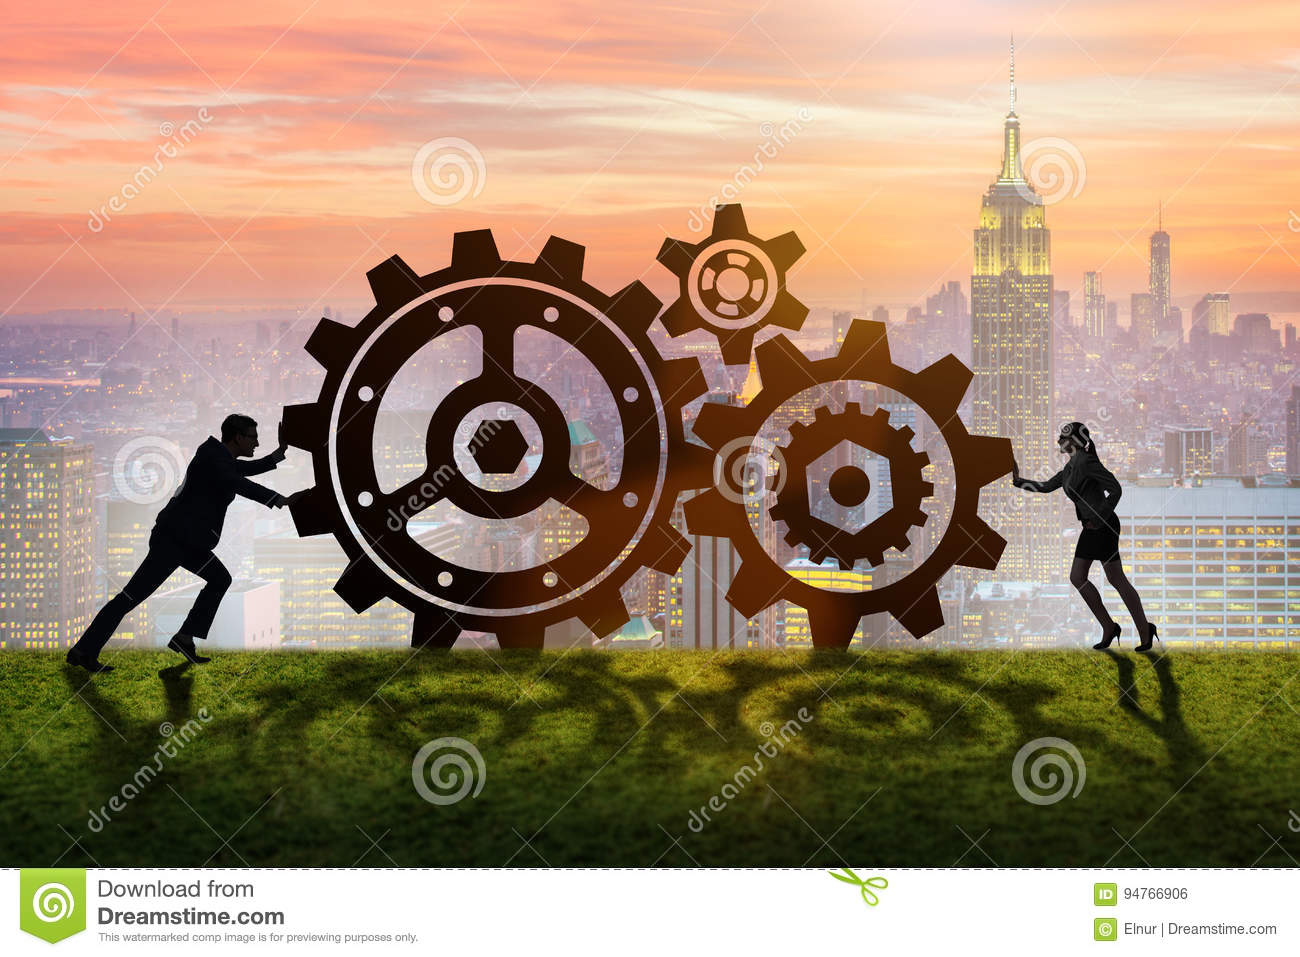 The businesspeople in teamwork example with cogwheels stock photo.